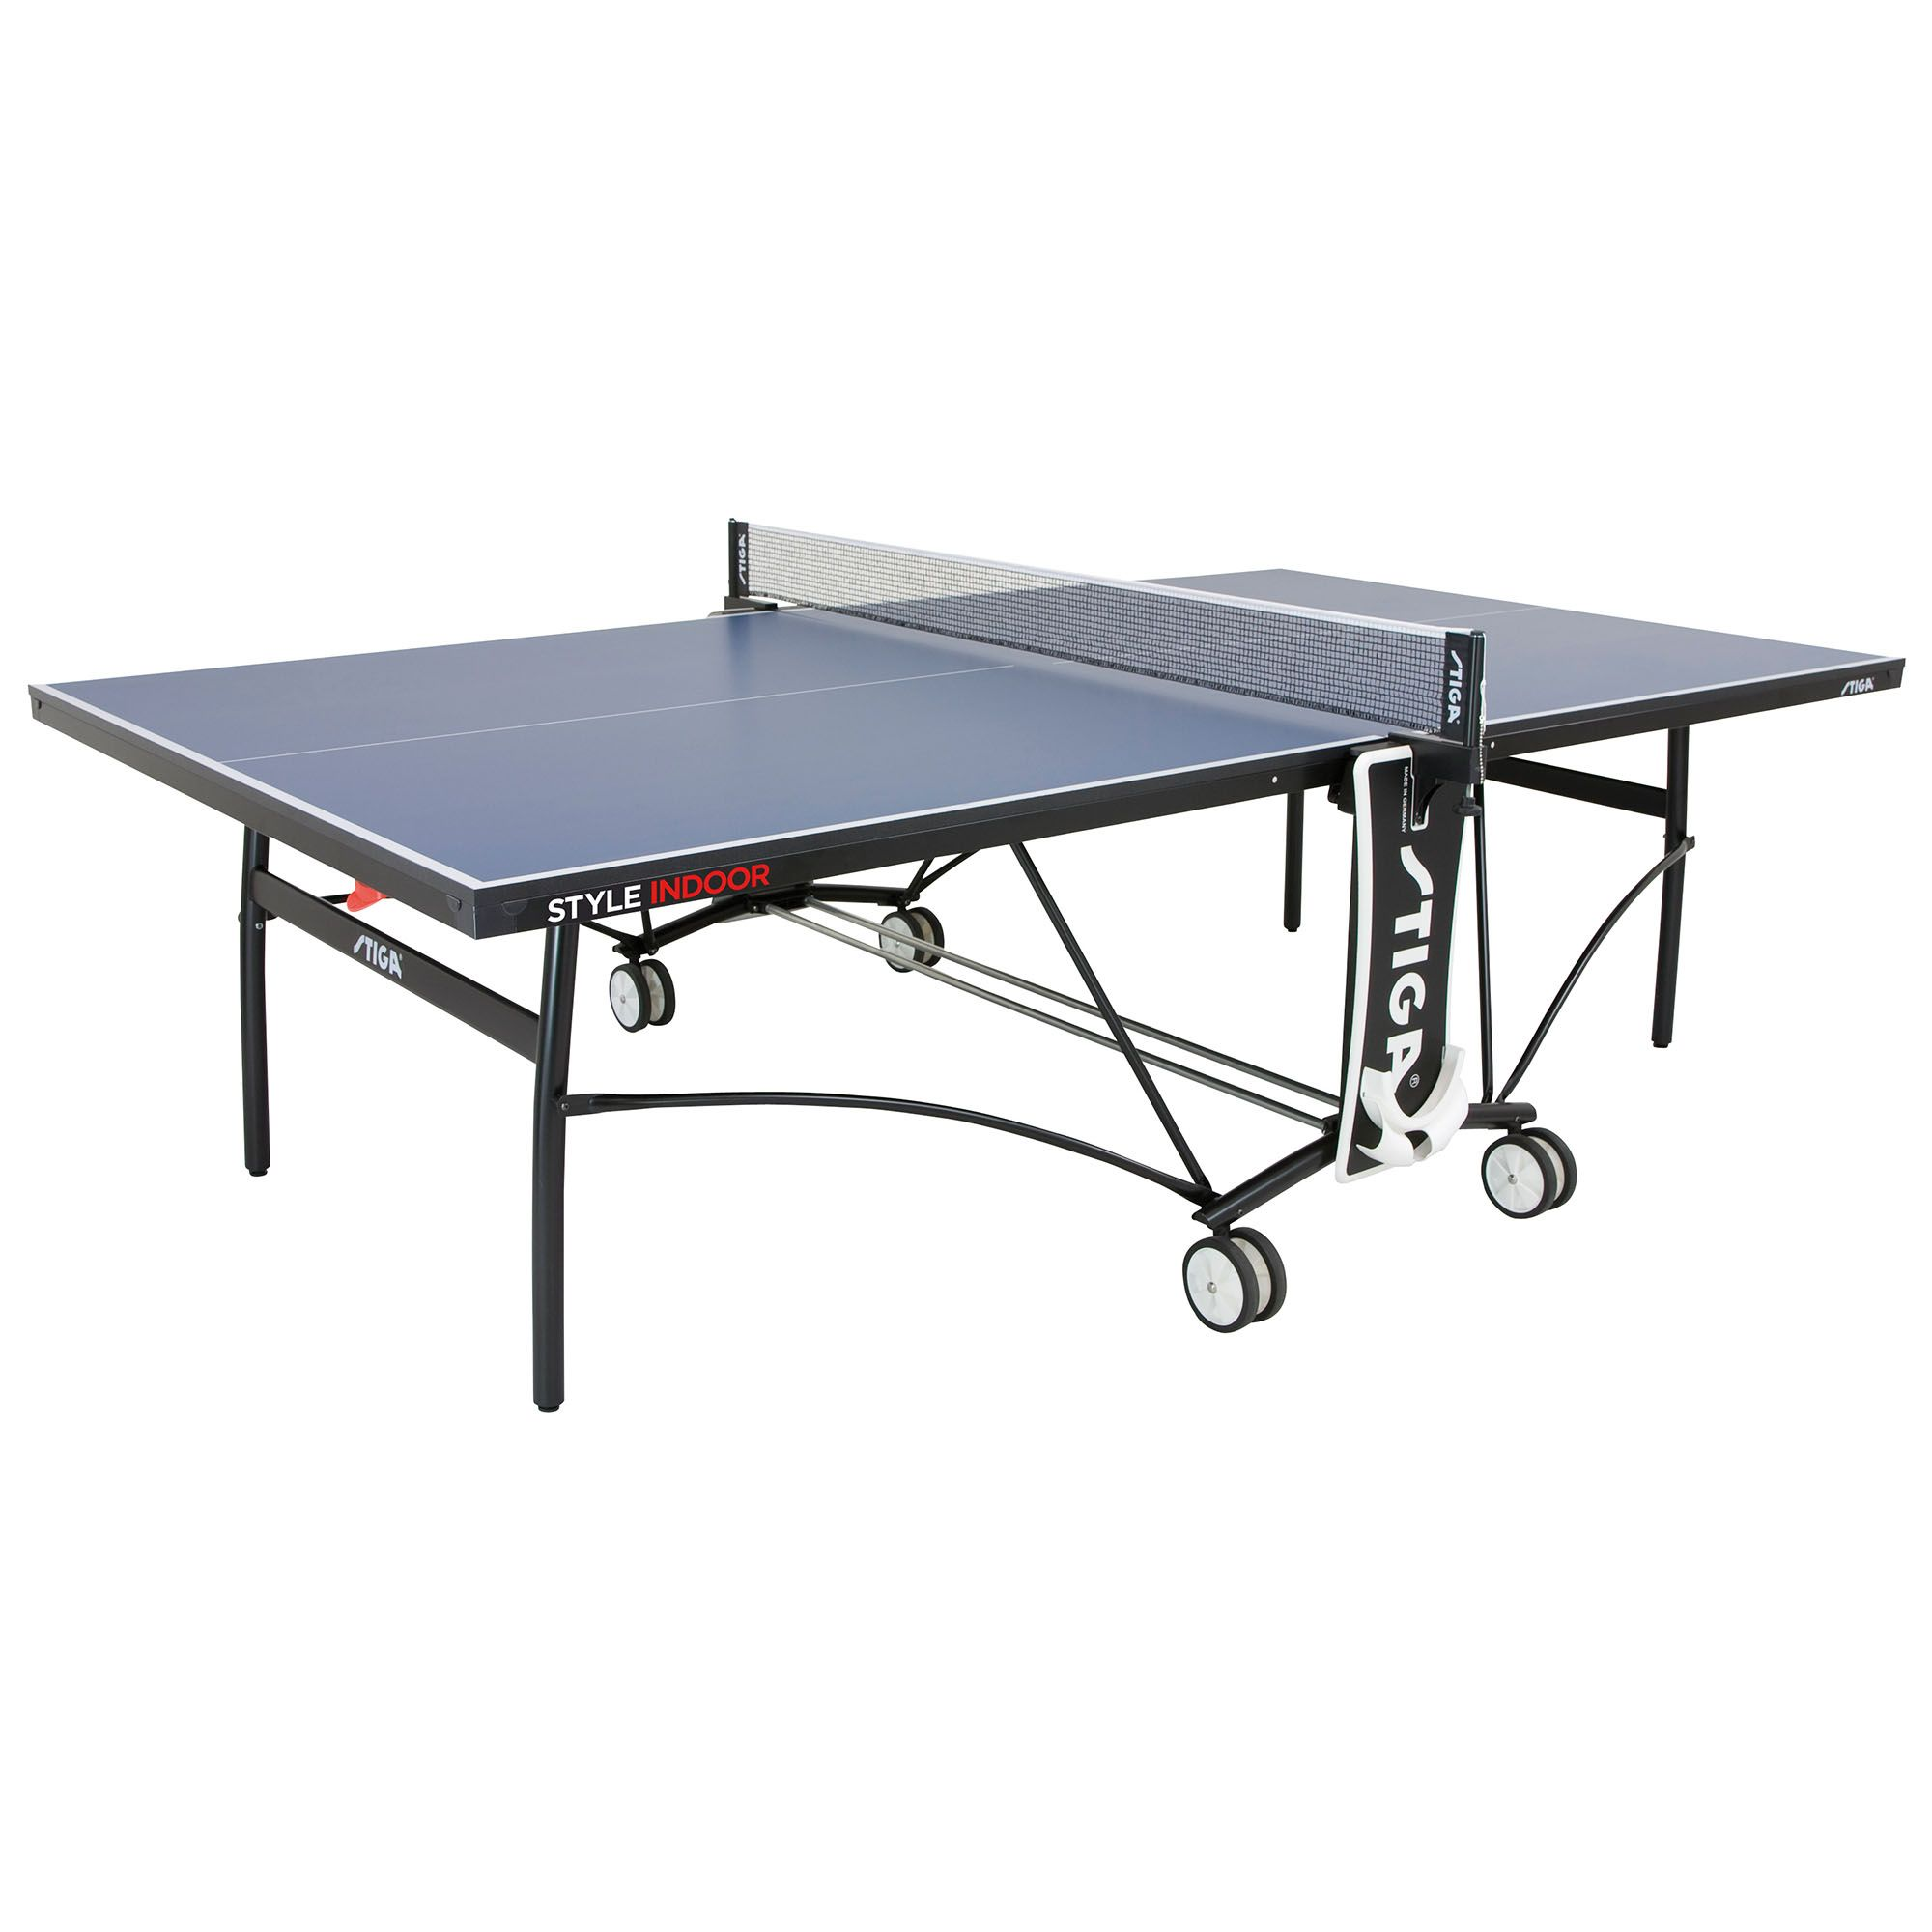 Stiga table tennis table